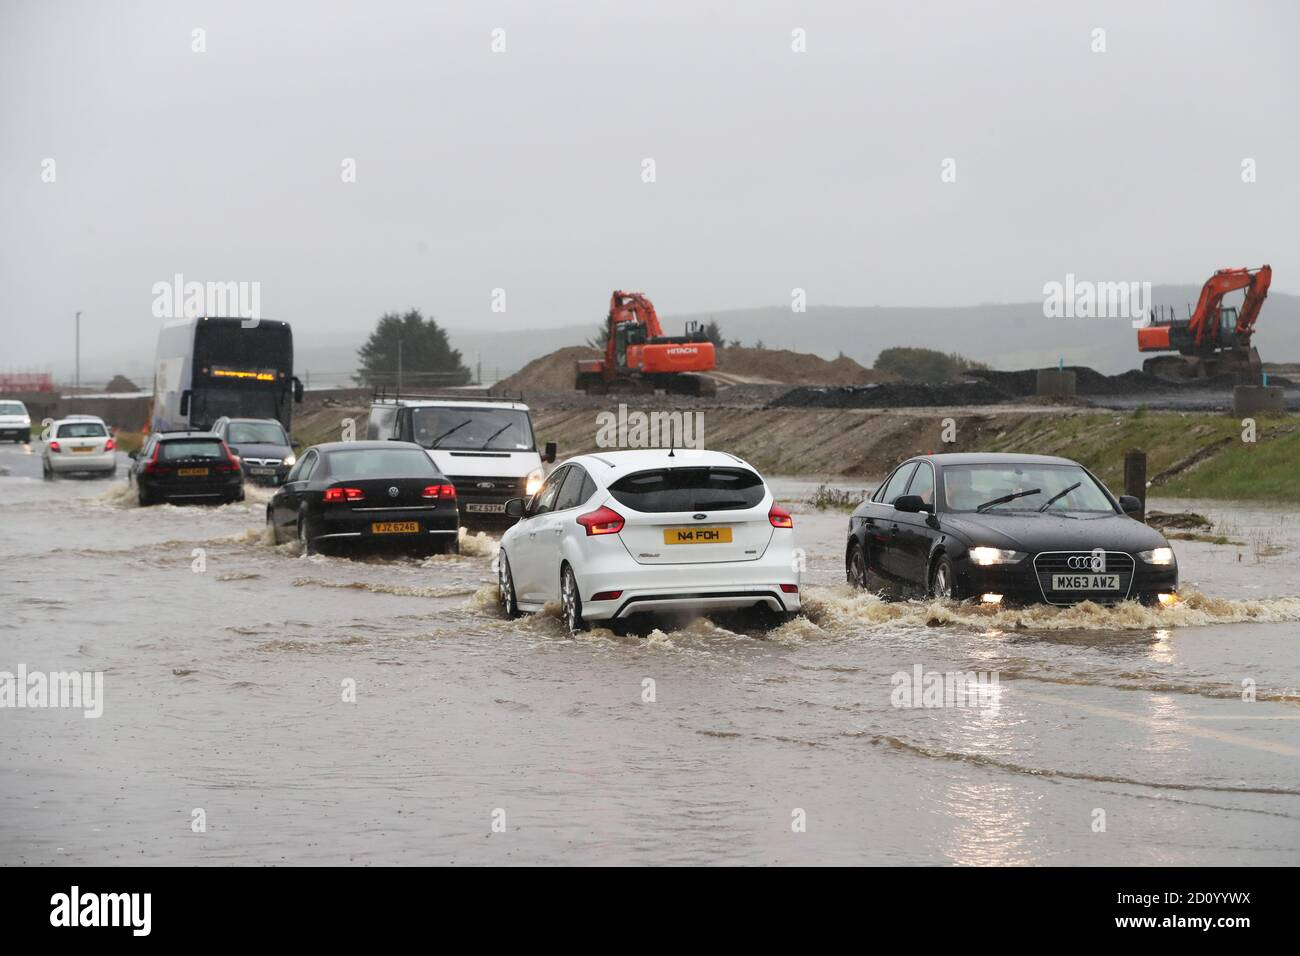 Cars make their way through a flooded road in Claudy, County Londonderry. The UK's wet weekend will continue as a weather warning for rain across parts of Wales and England has been extended. Stock Photo